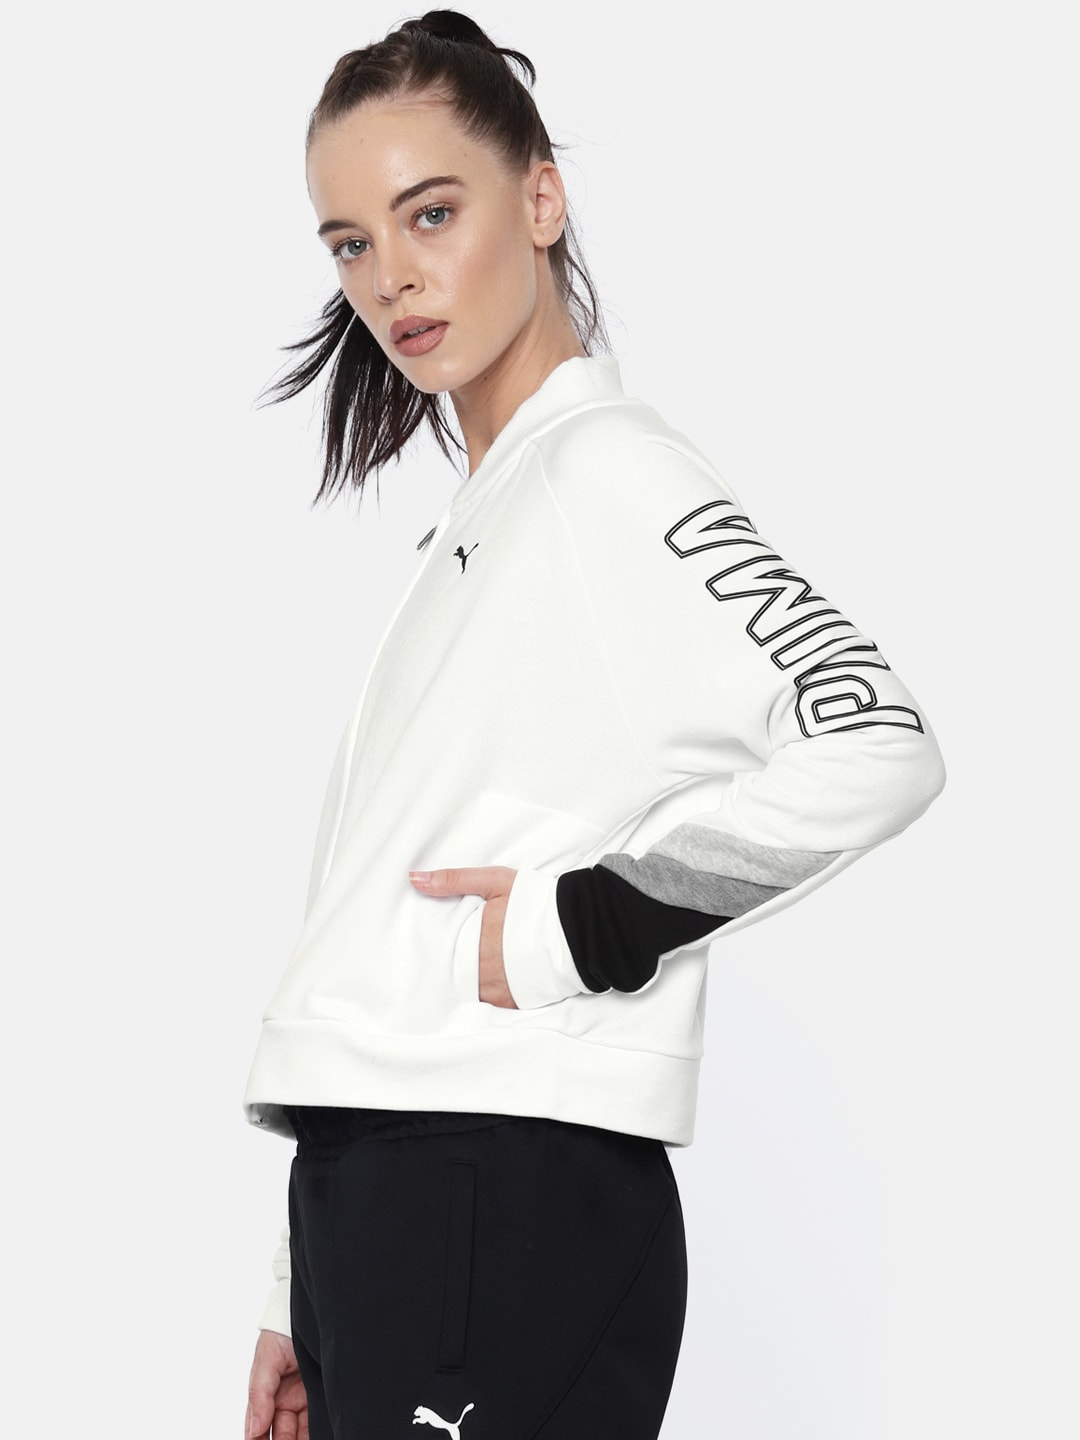 12402d07a6ed1 Puma Sweatshirt - Buy Puma Sweatshirts for Men   Women In India